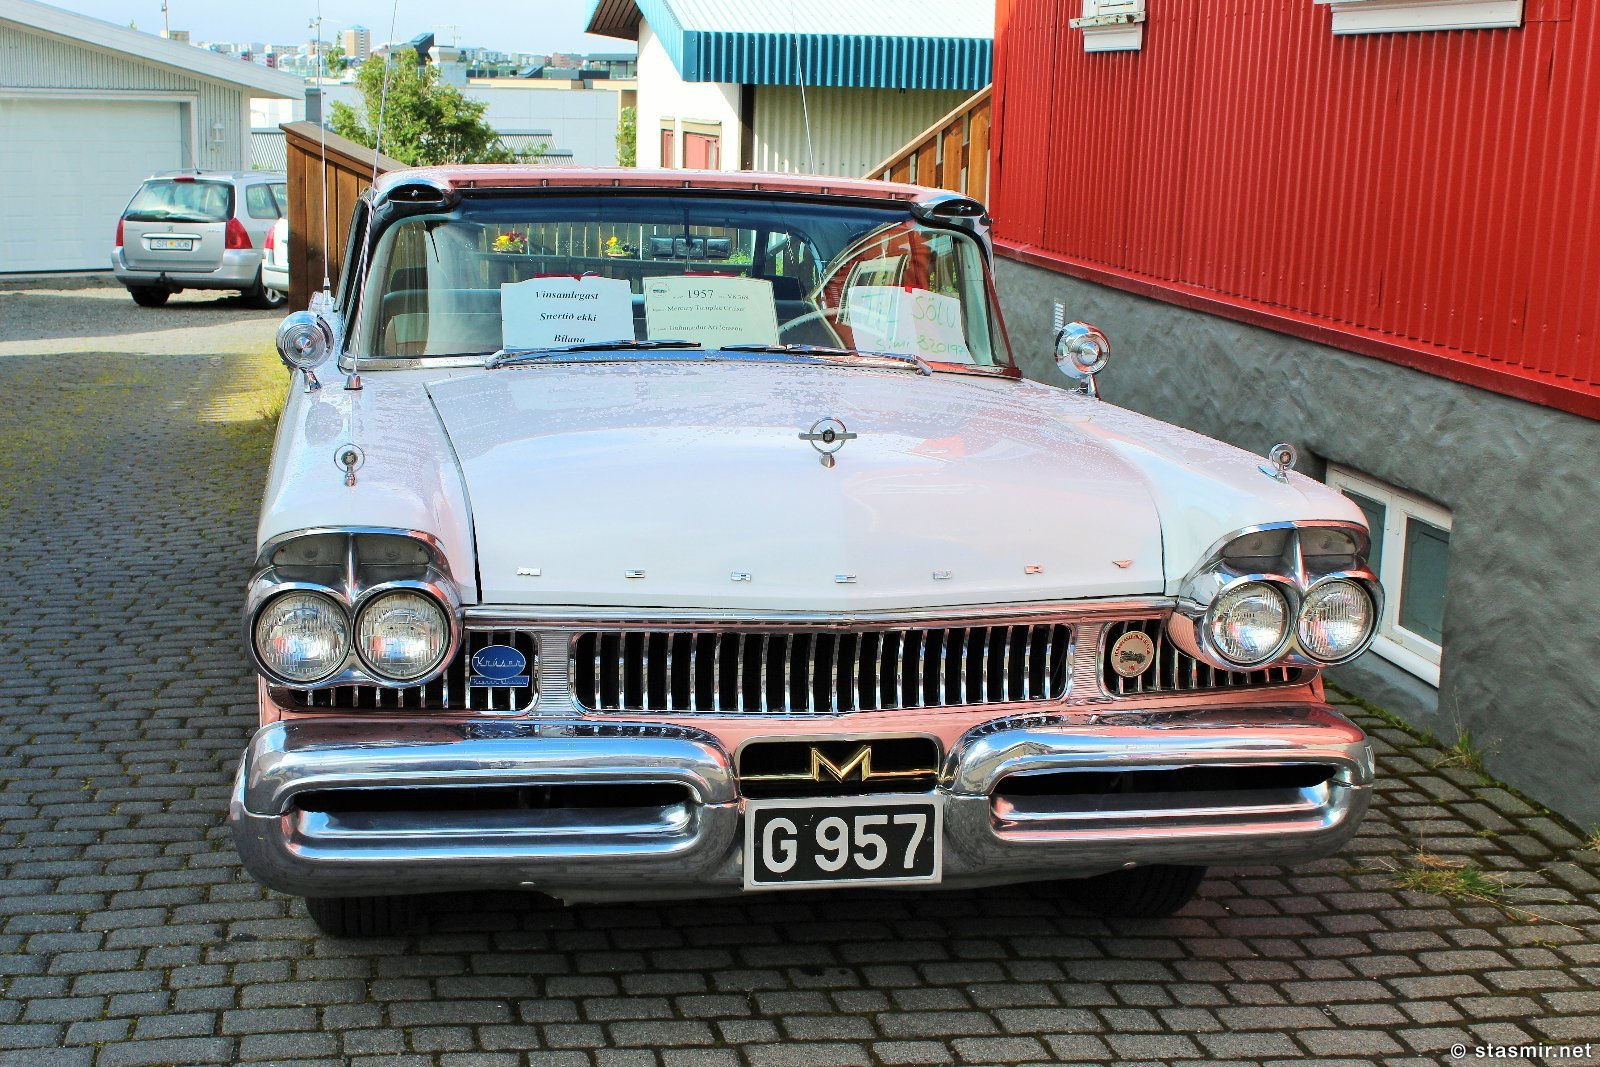 Меркурий, антикварные машины в Исландии, Mercury 1957, Vintage cars in Iceland, Stasmir, Stasmir Travel,  Станислав Смирнов, Стасмир, Стасмир ТрэвэлÞ Хабнарфьордюр, Iceland